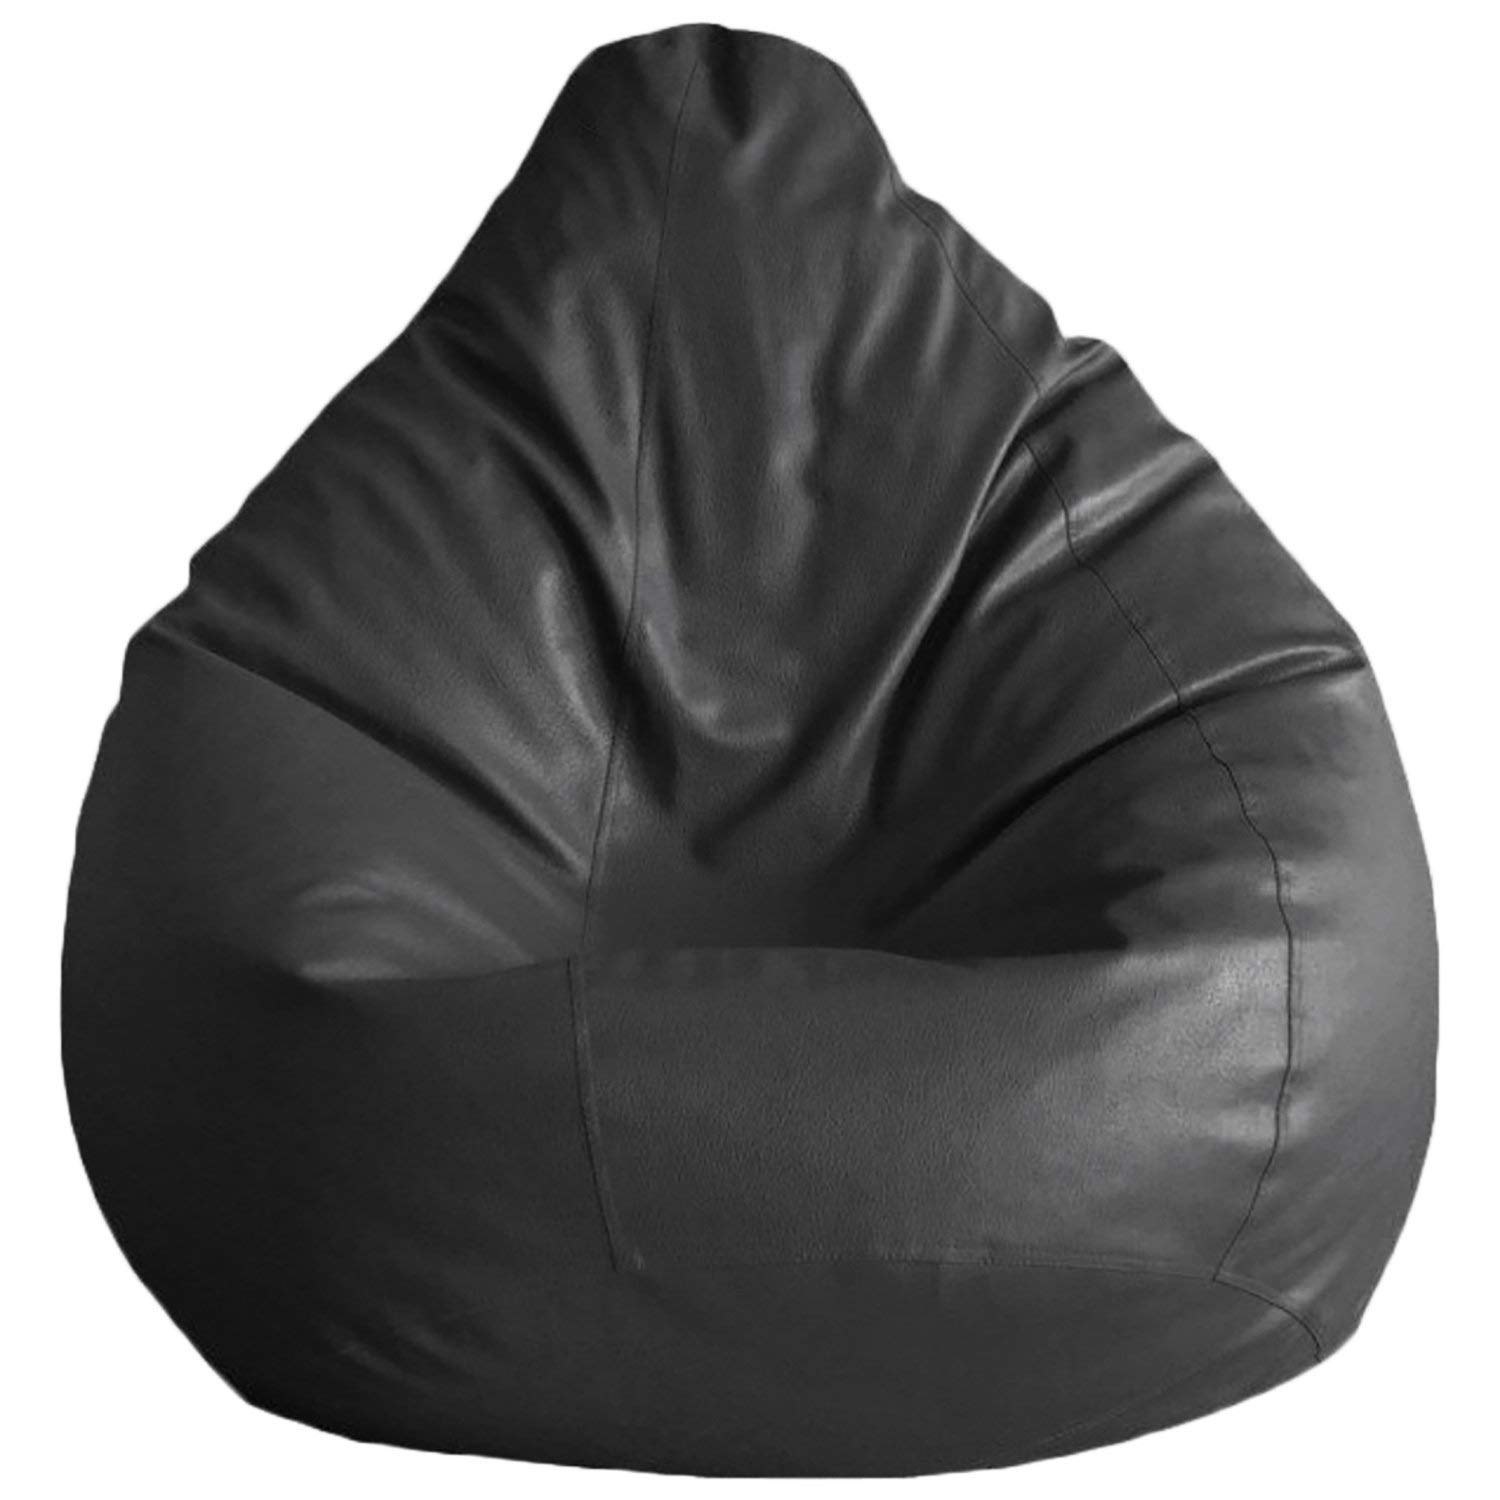 Ink Craft Classic Solid Bean Bag Chair for Bedroom , Living Room Lounger - Black XL - Without Beans